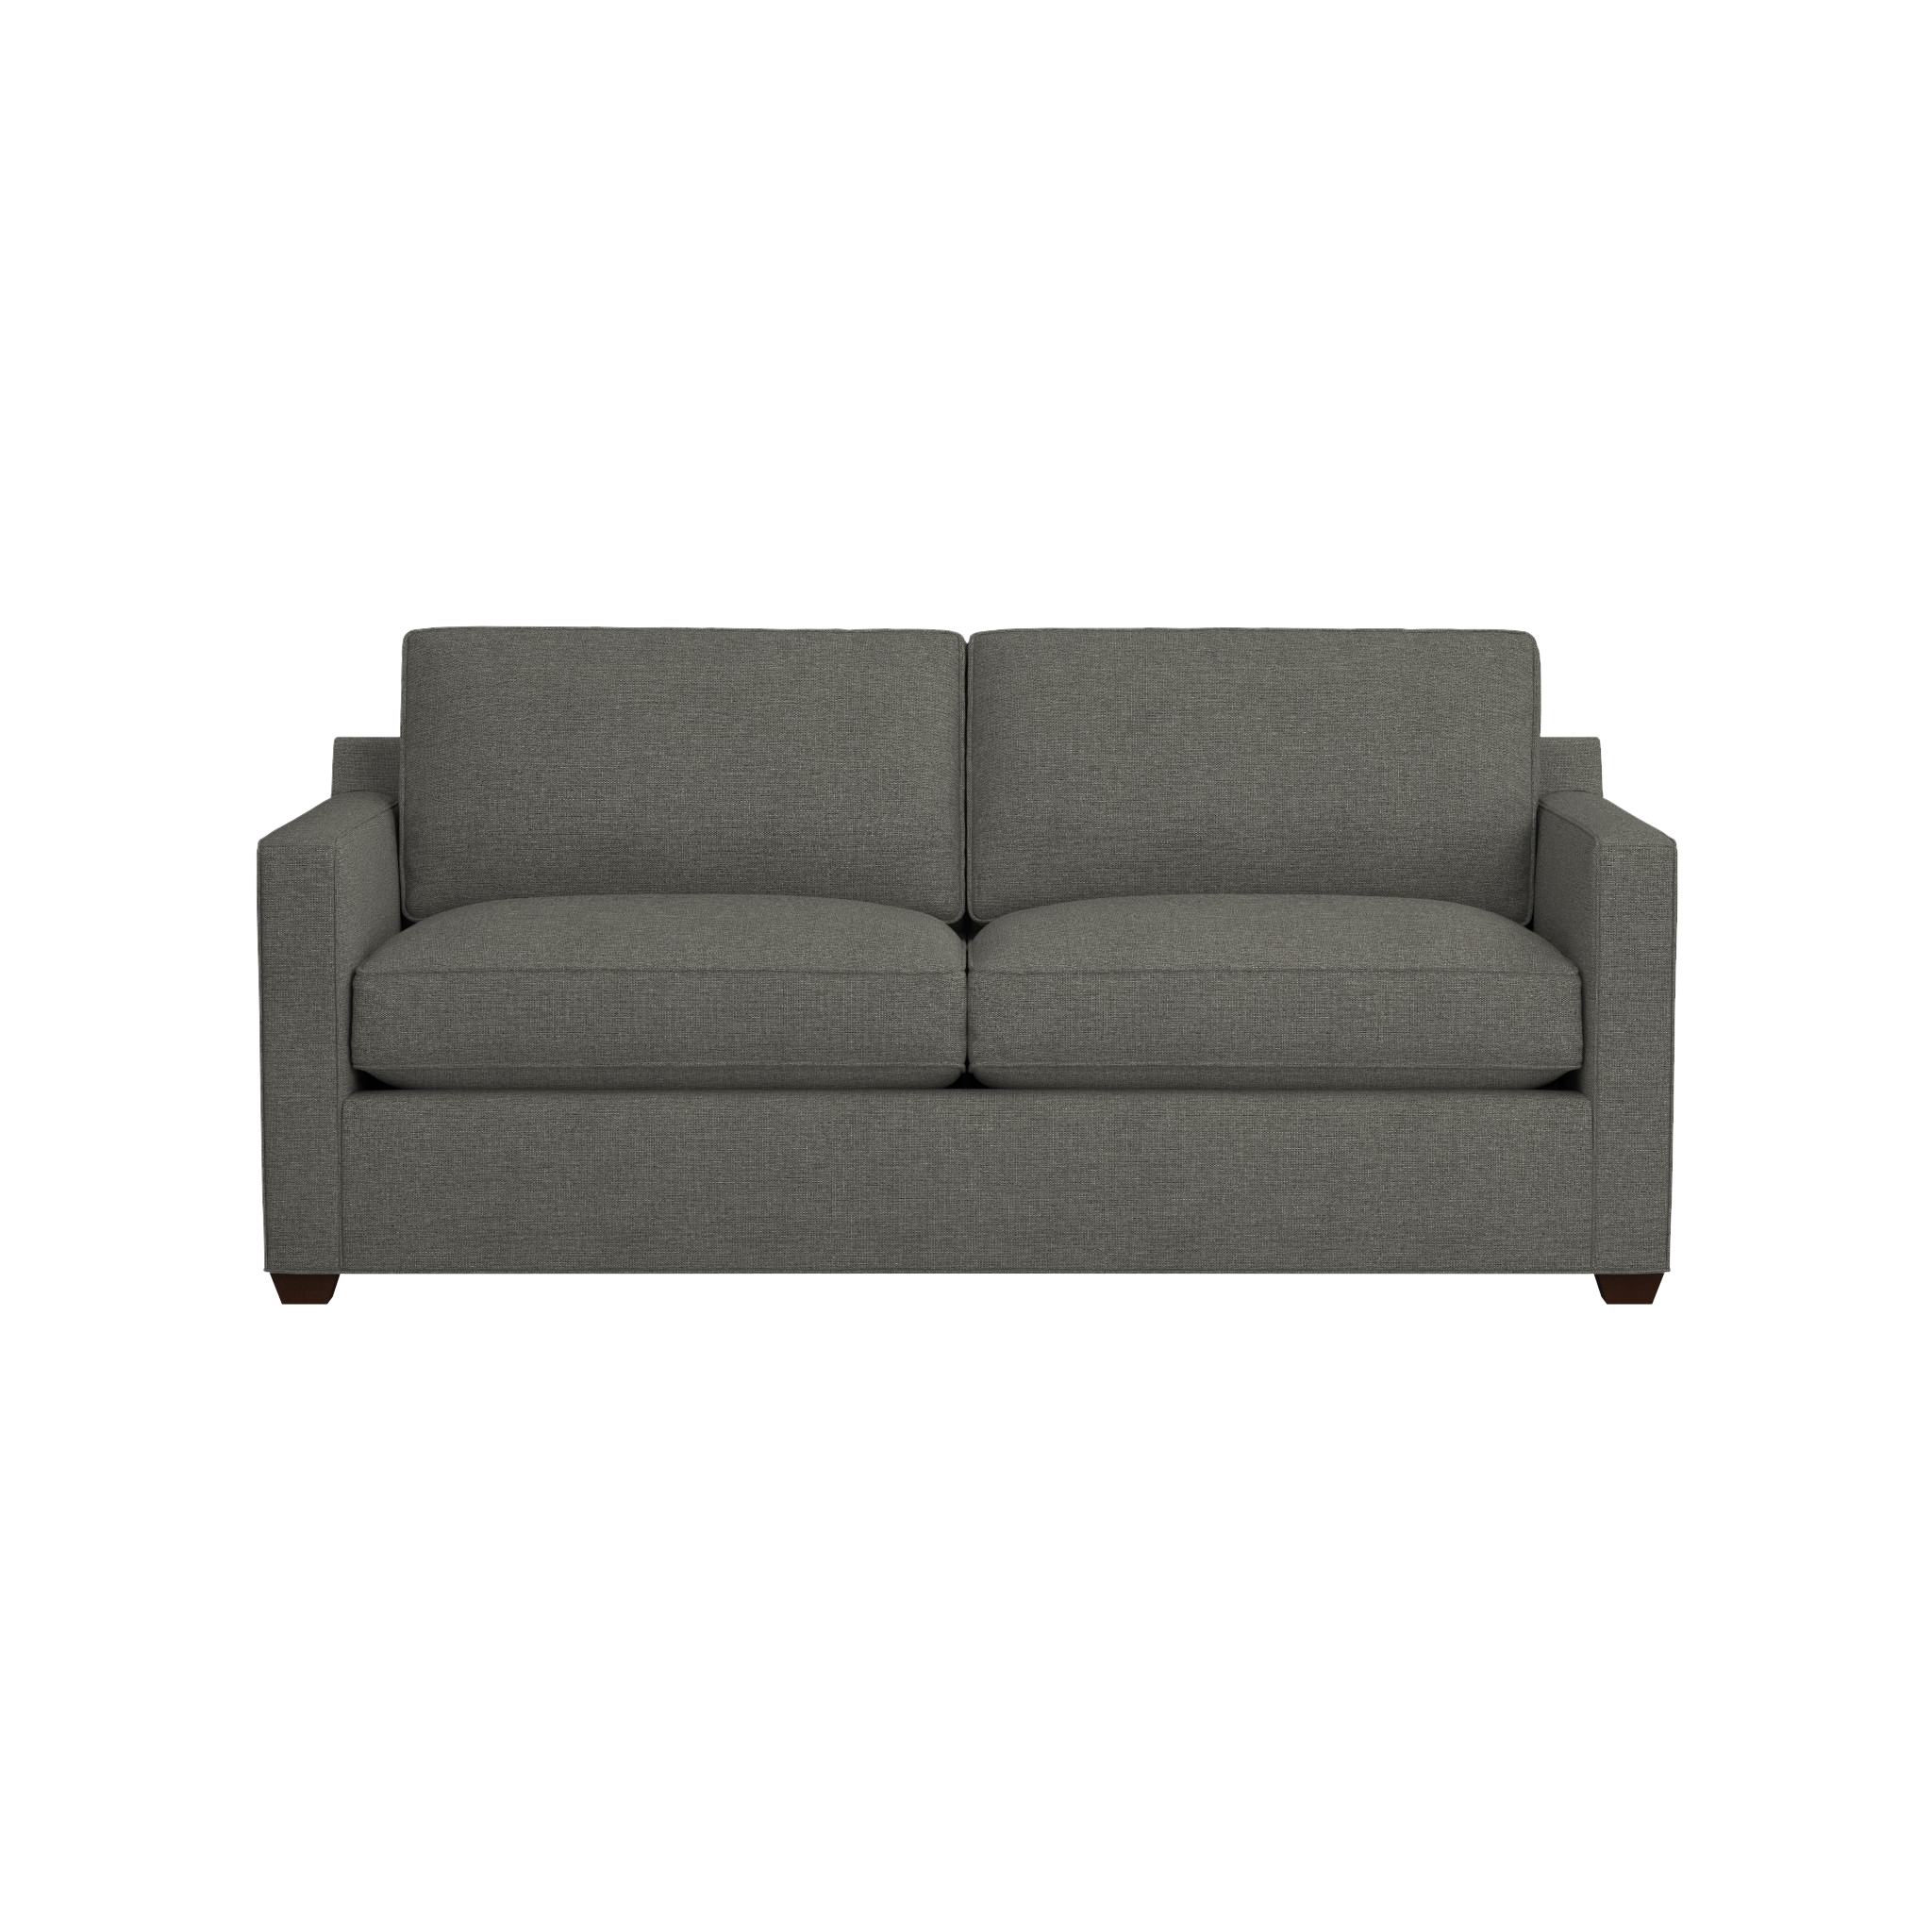 crate and barrel sleeper sofa bed chairs uk 20 inspirations sleepers ideas